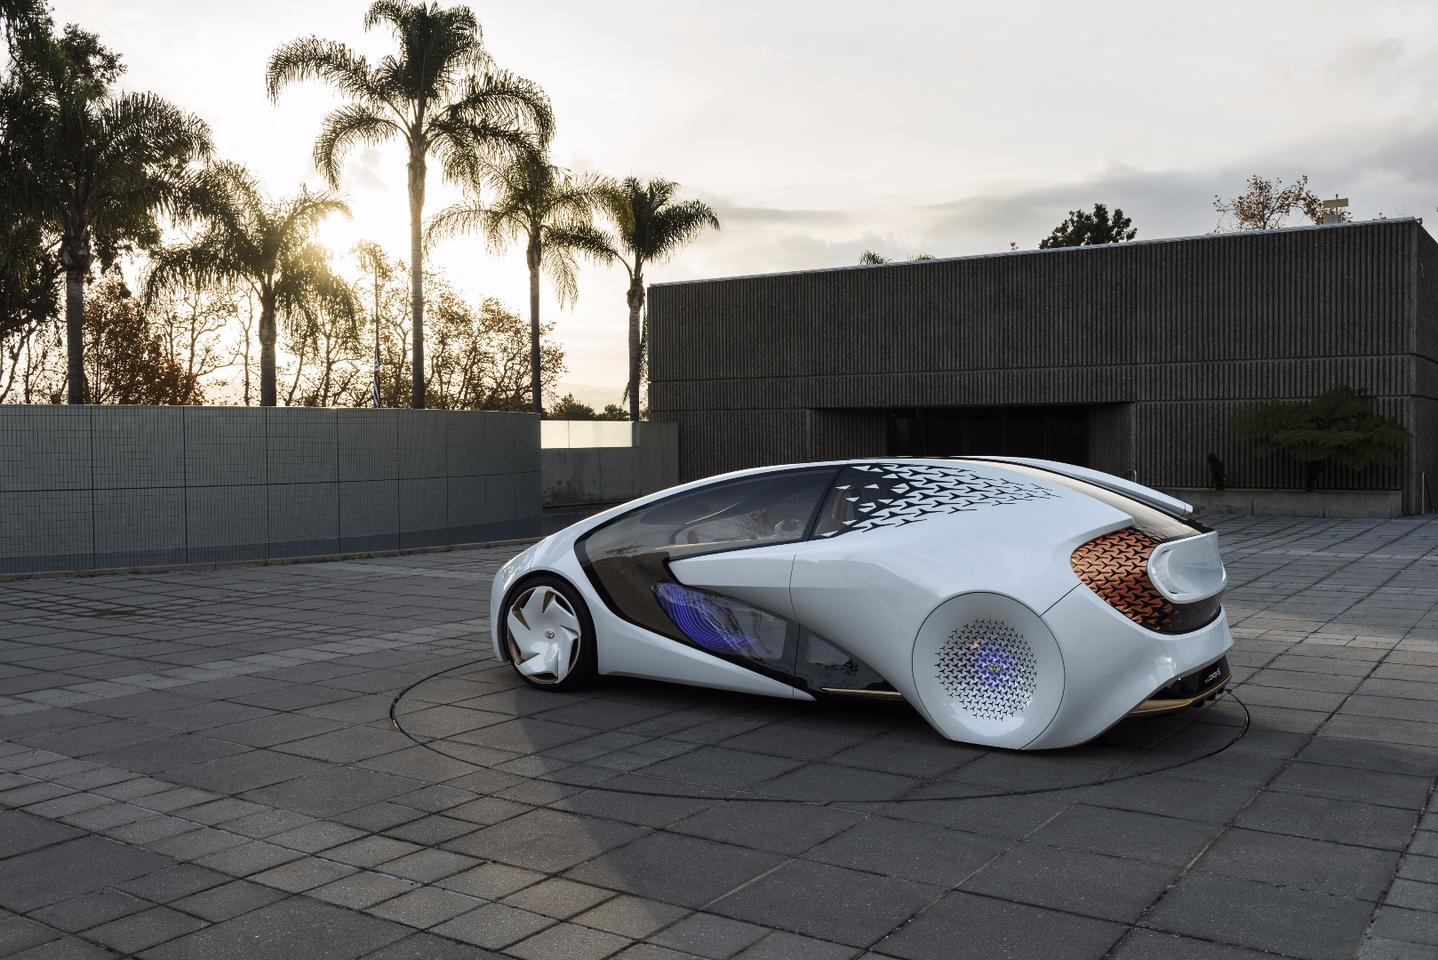 The ToyotaConcept-iemploys a highly conceptual,futuristic look with lots of glass and faired rear wheels